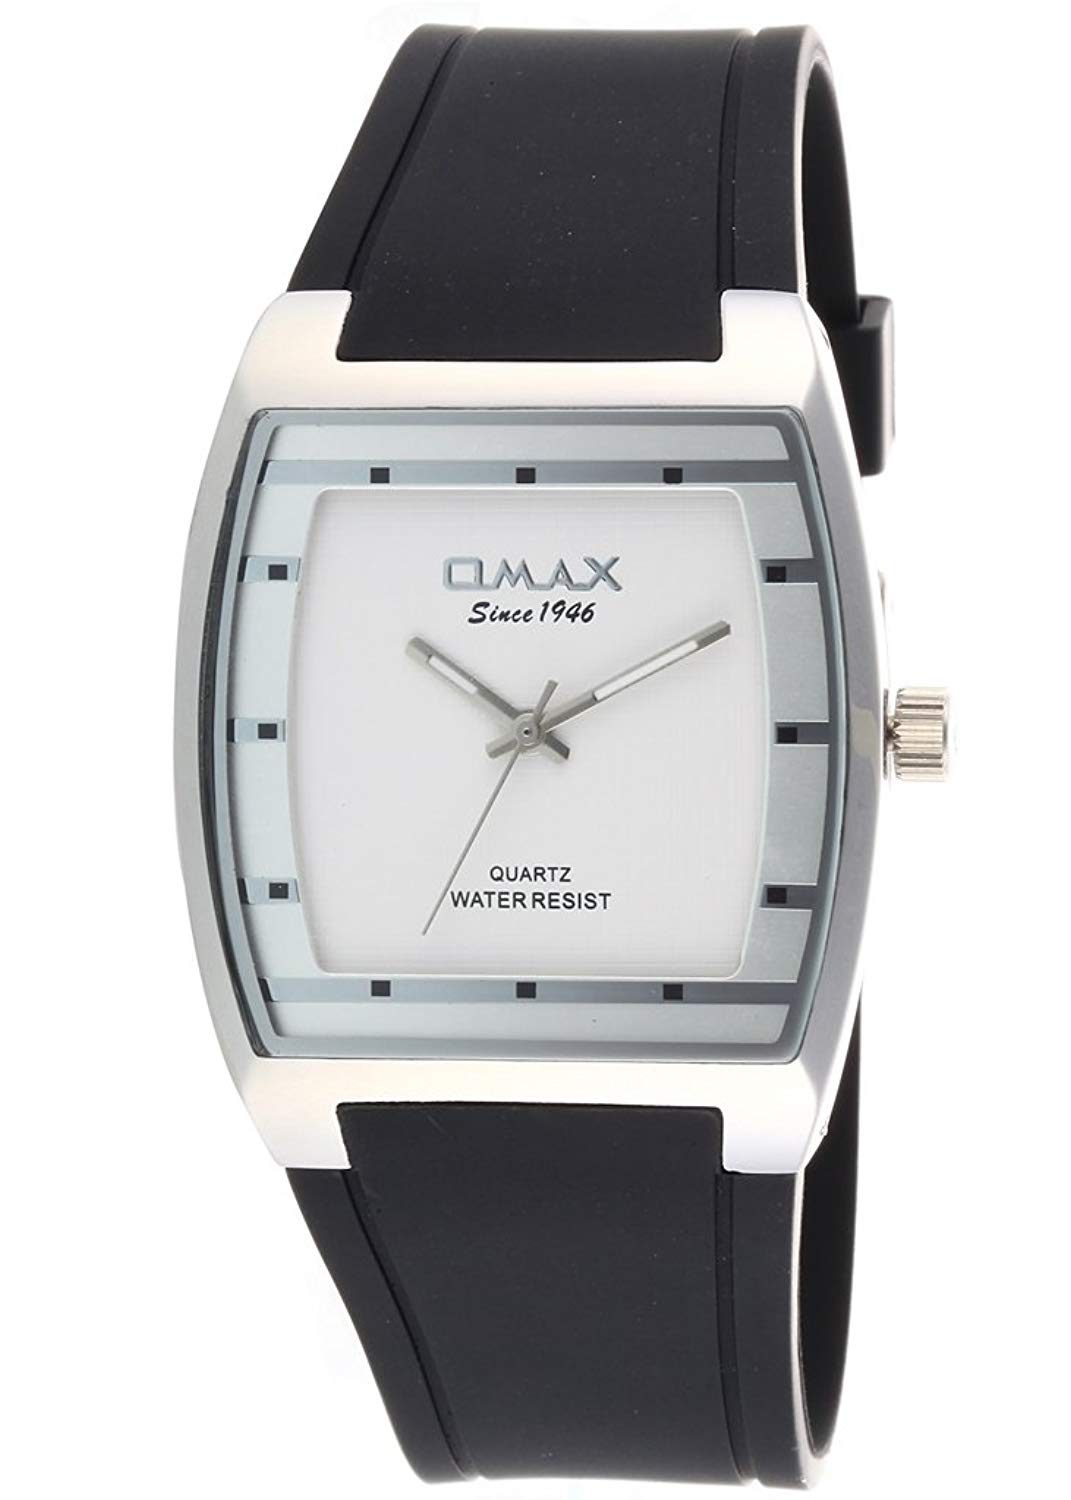 New Fashion Dress Style Omax Mens Wrist Watch Black Silicone Strap Silver Dial Analog Quartz